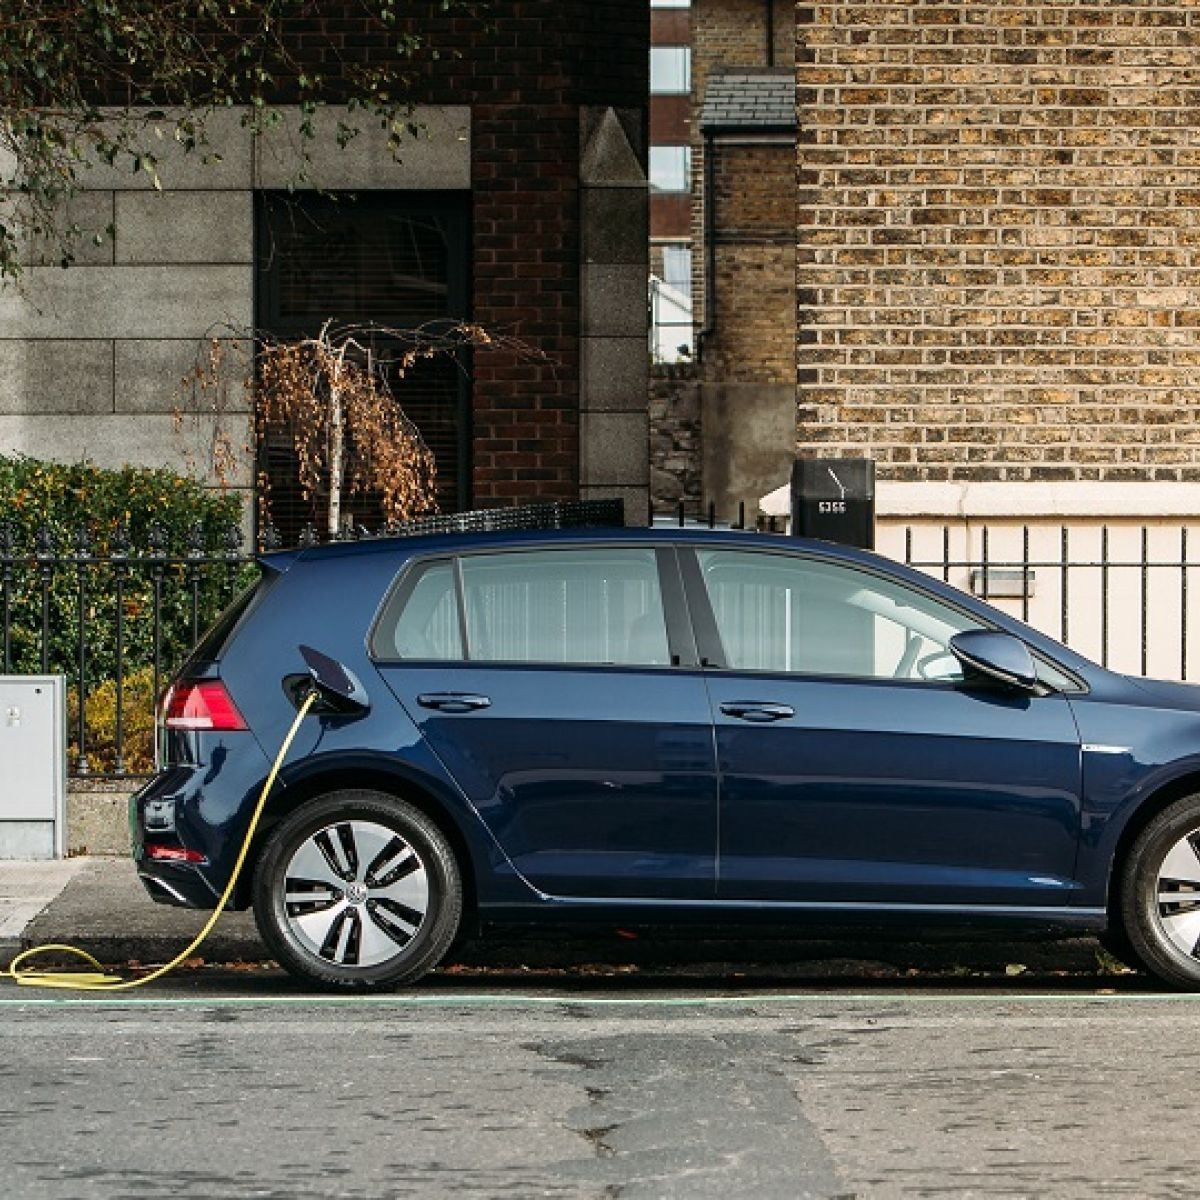 Ireland S Electric Car Journey Gathers Speed With New Vw E Golf